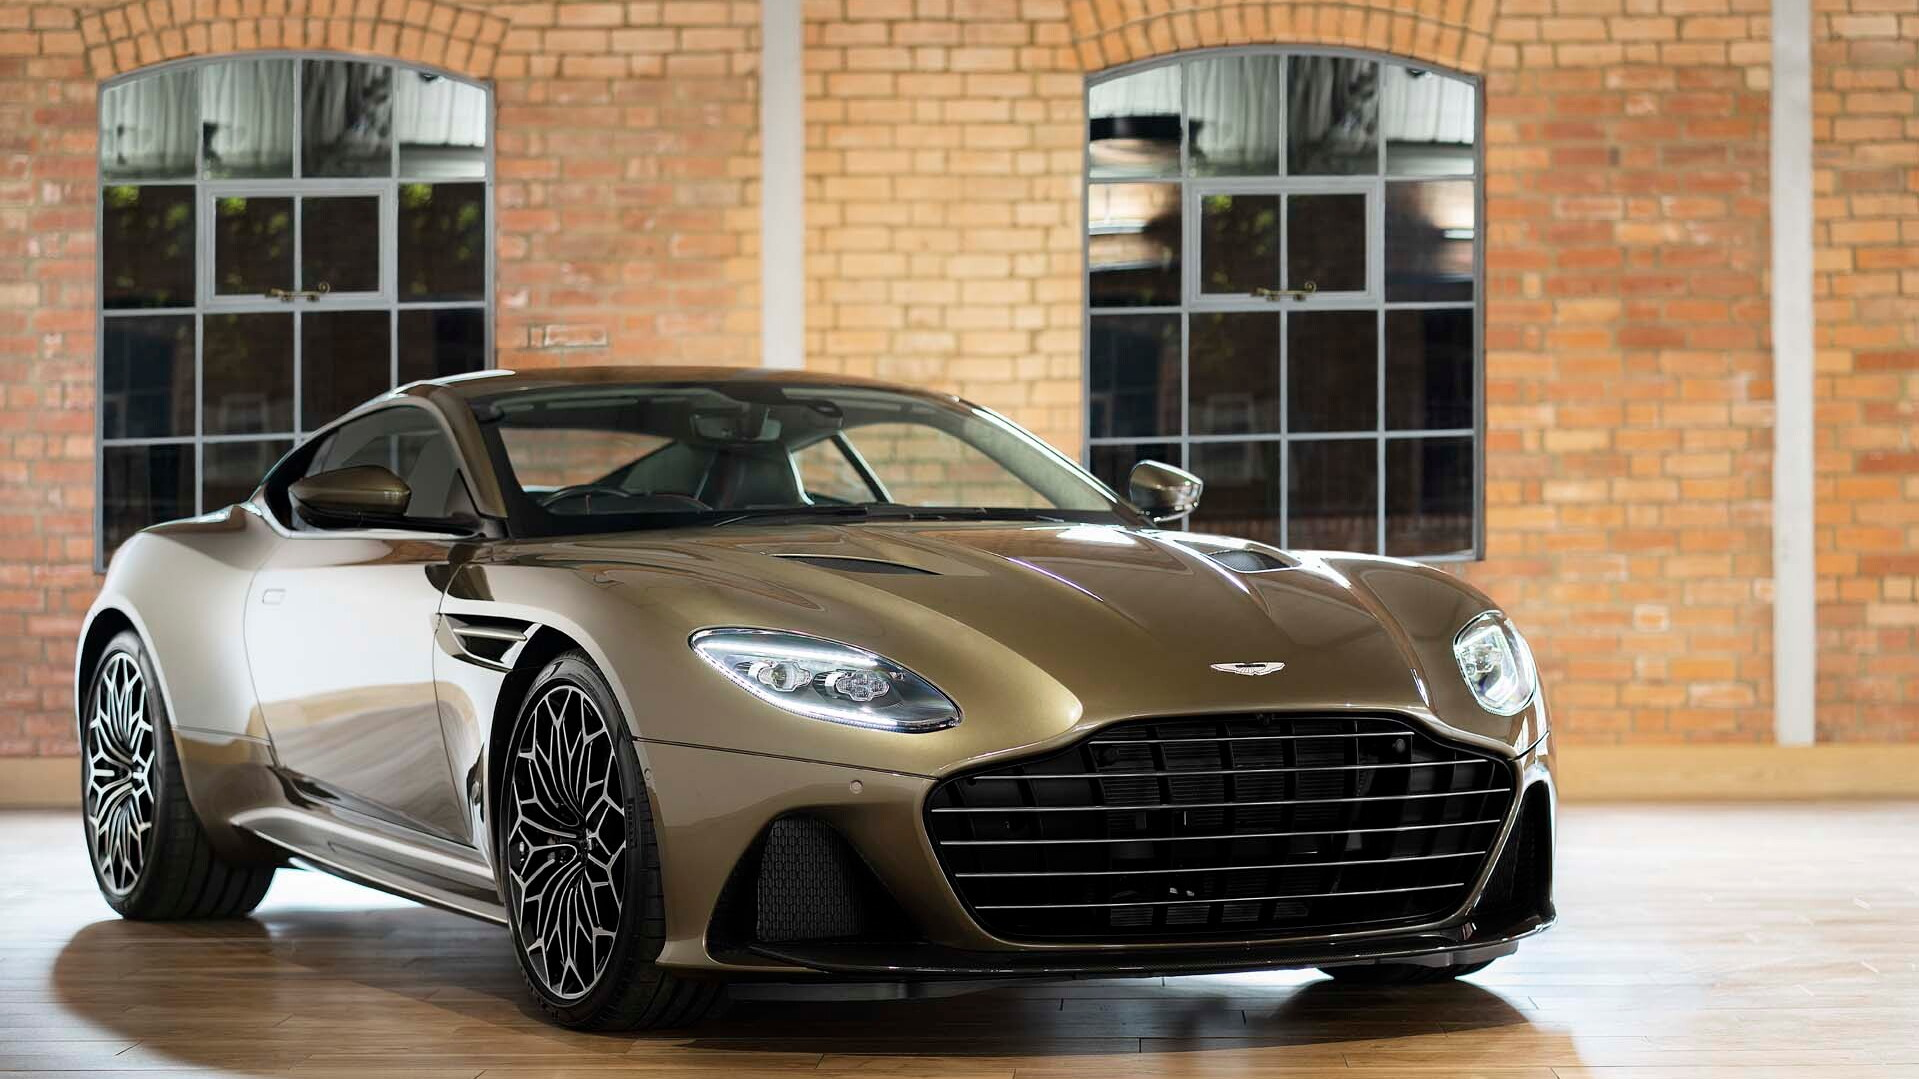 Aston's On Her Majesty's Secret Service DBS Superleggera Honors the Movie